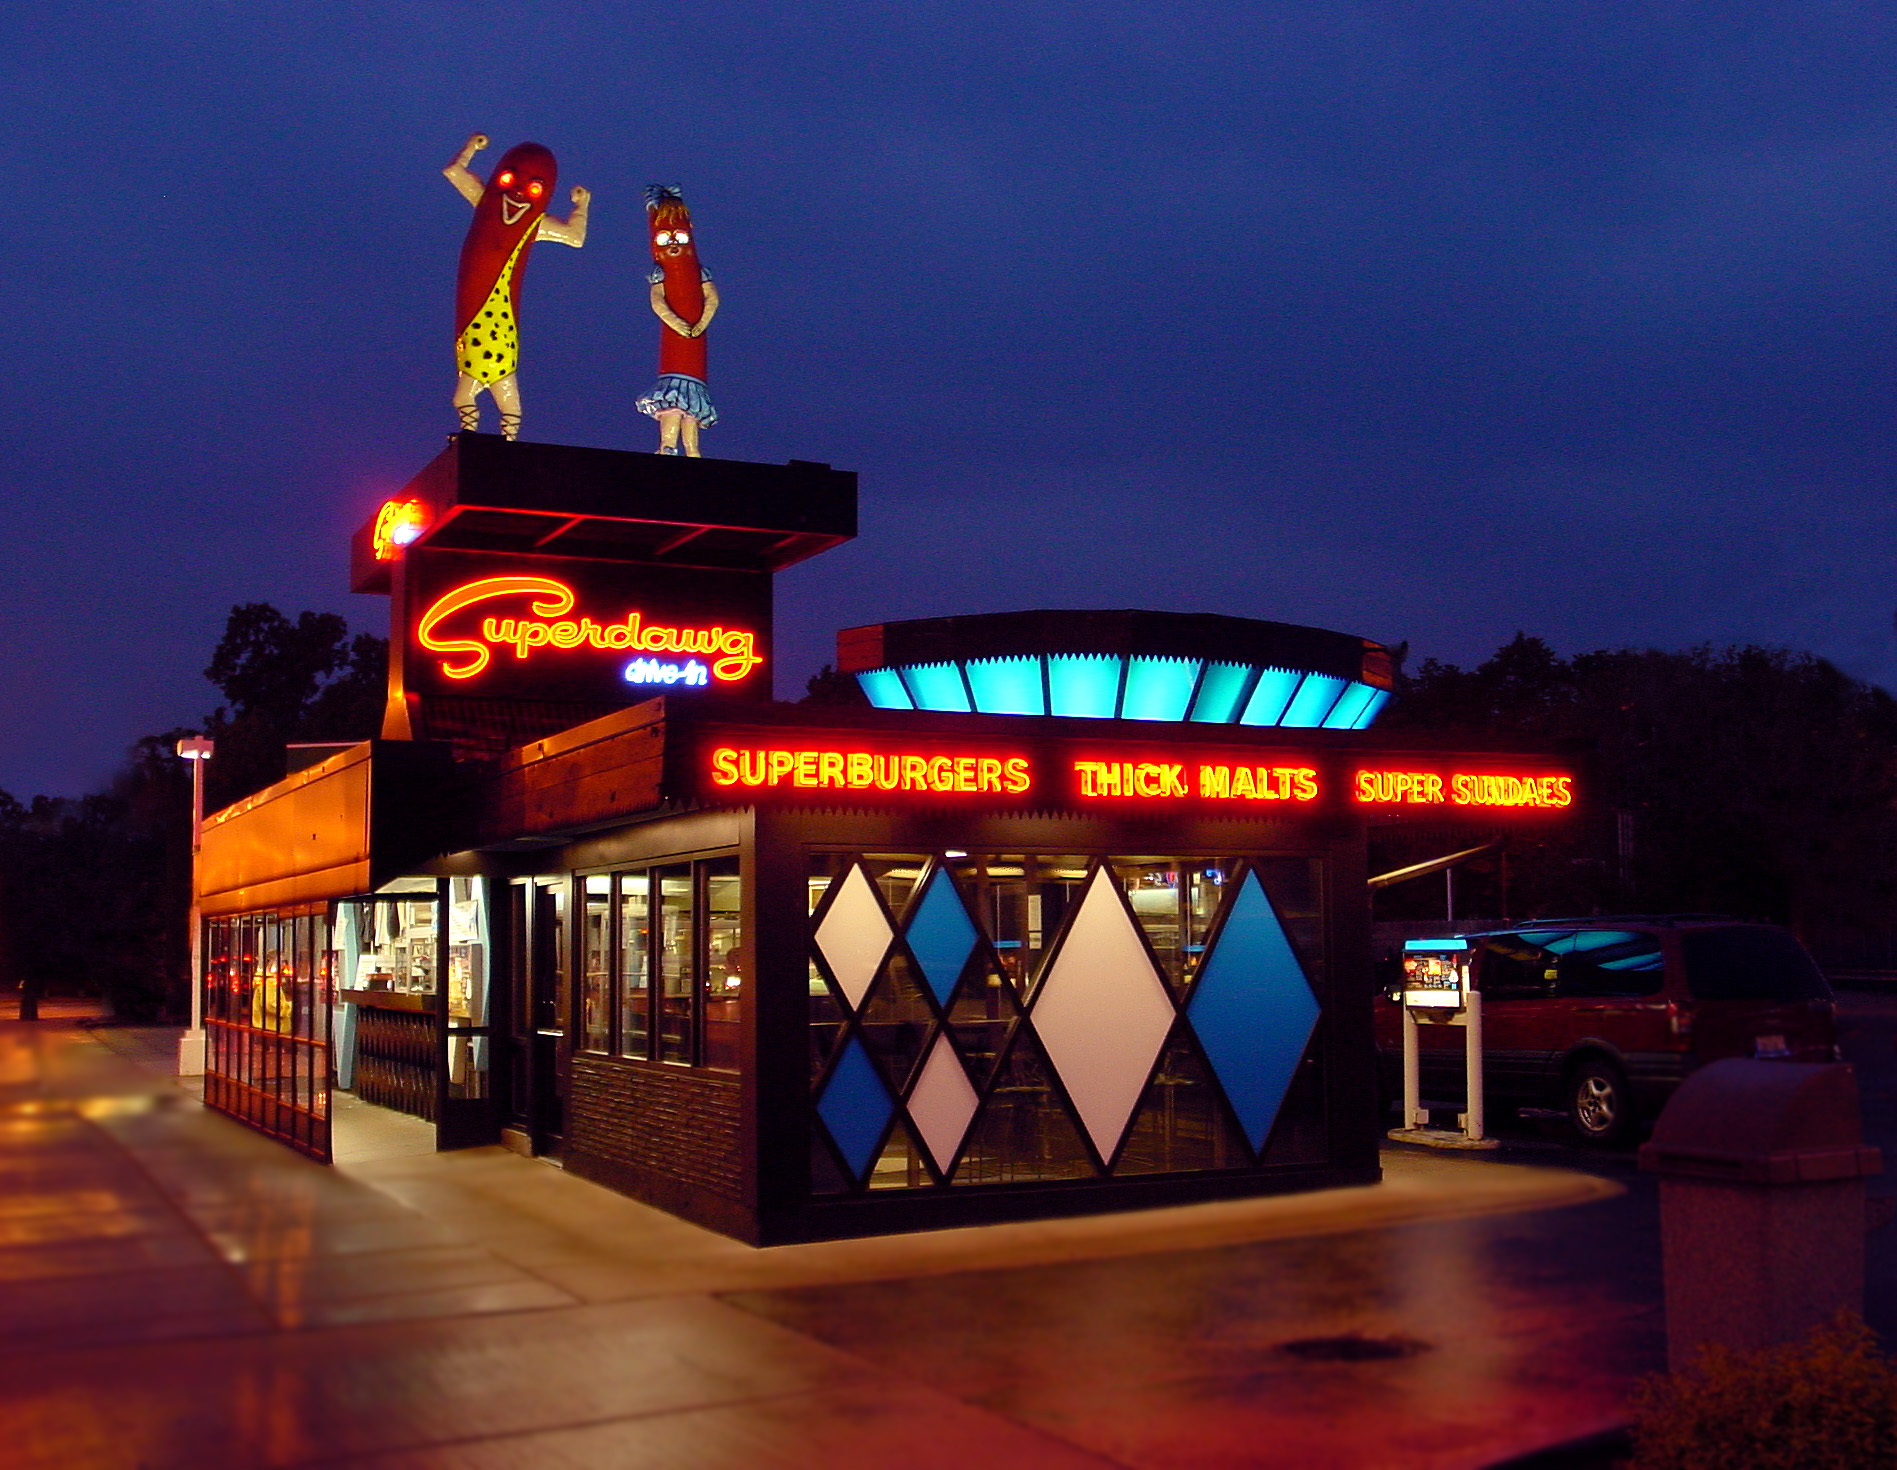 2013-08-12-superdawg_2004night.jpg